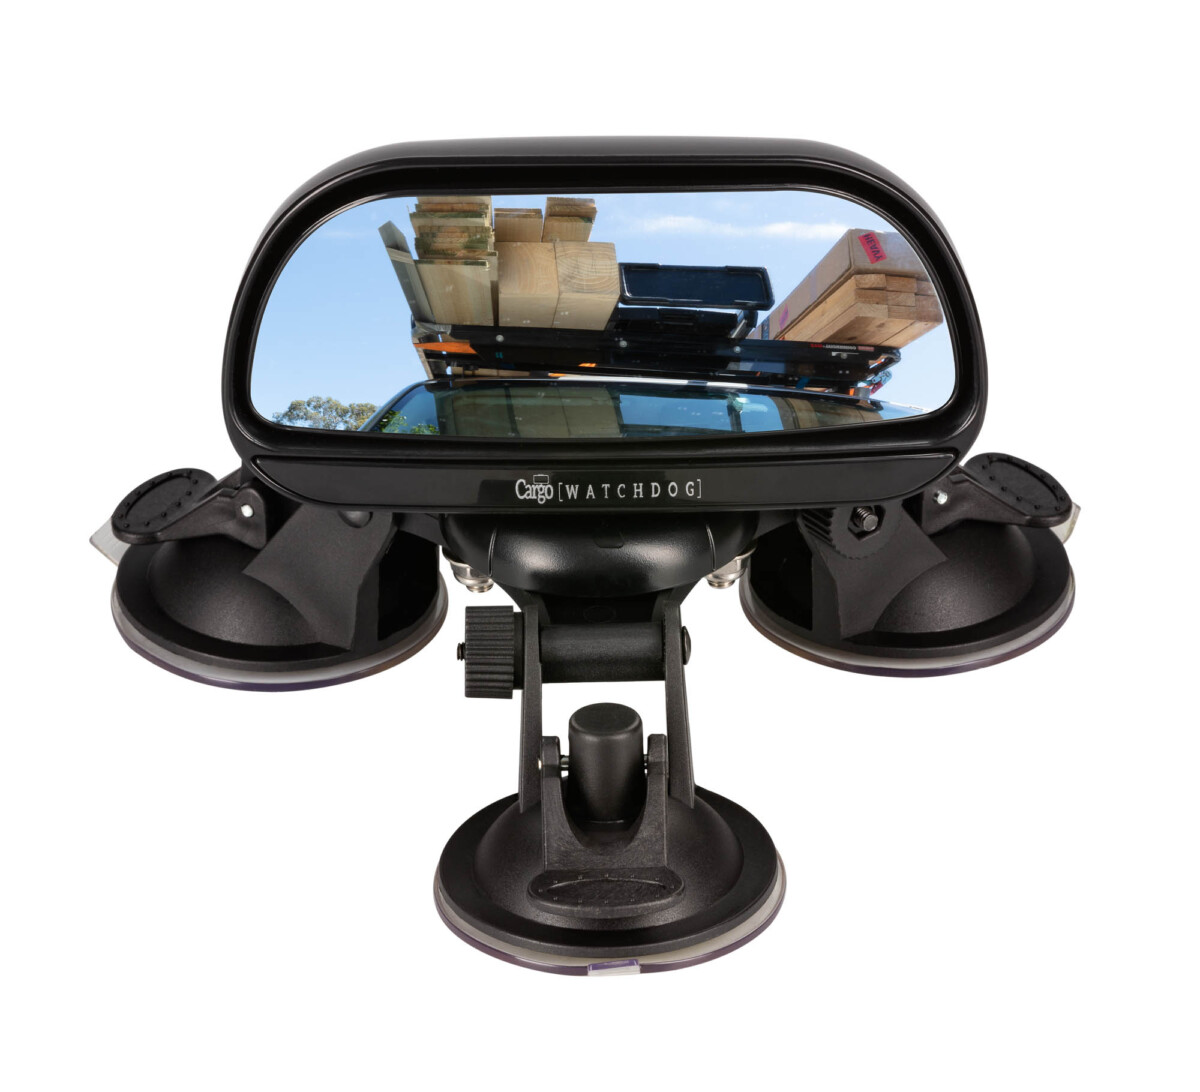 Dog-Watch-Cargo-Mirror-Front-full-view-068-With-image-added